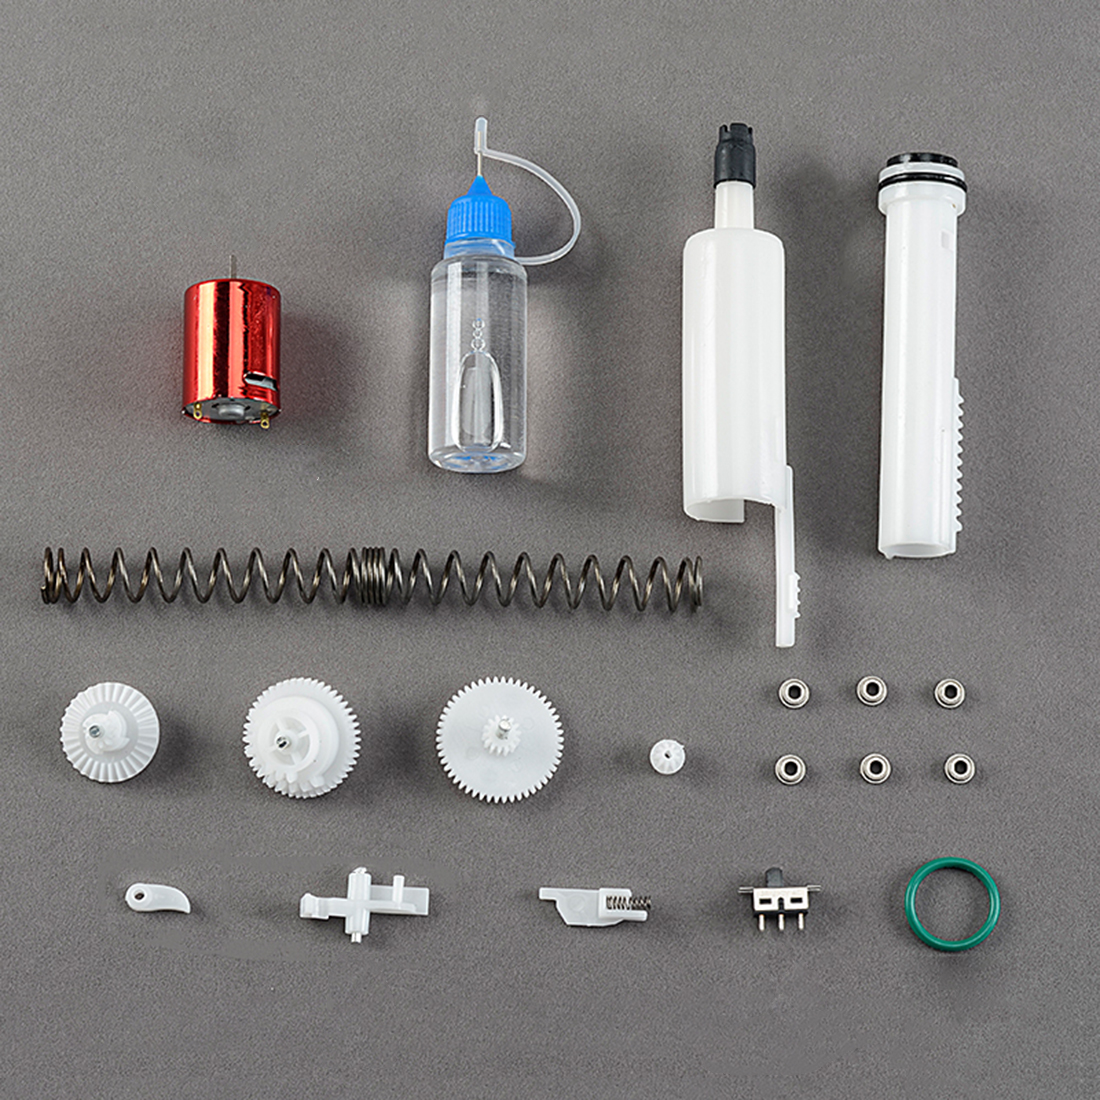 NFSTRIKE Exterior Modified Kit Gearbox Upgraded Kit for Xiaoyueliang AK12 Water Gel Beads Blaster Modification Replacement 2018